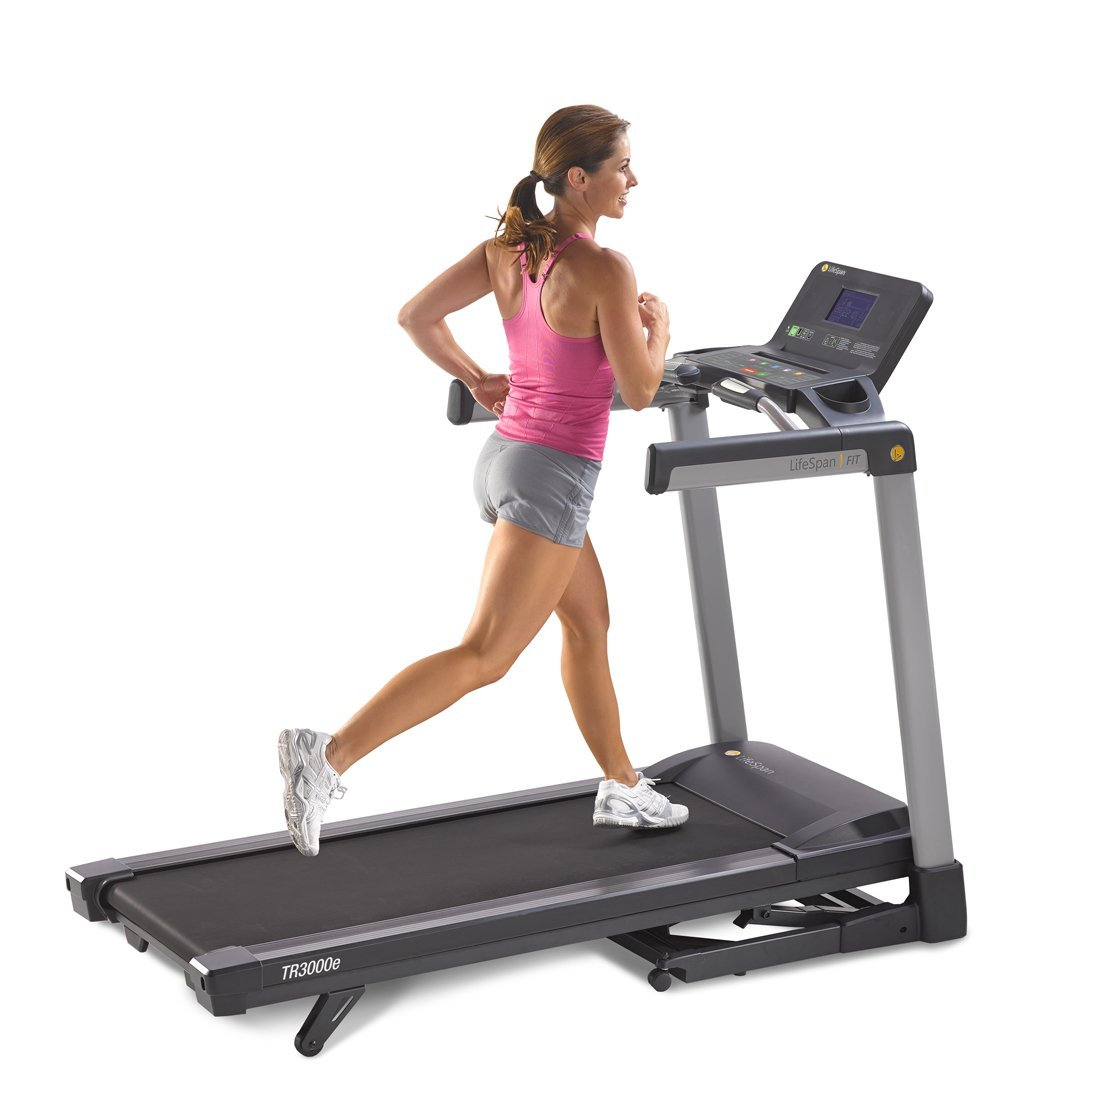 Lifespan TR3000 Treadmill